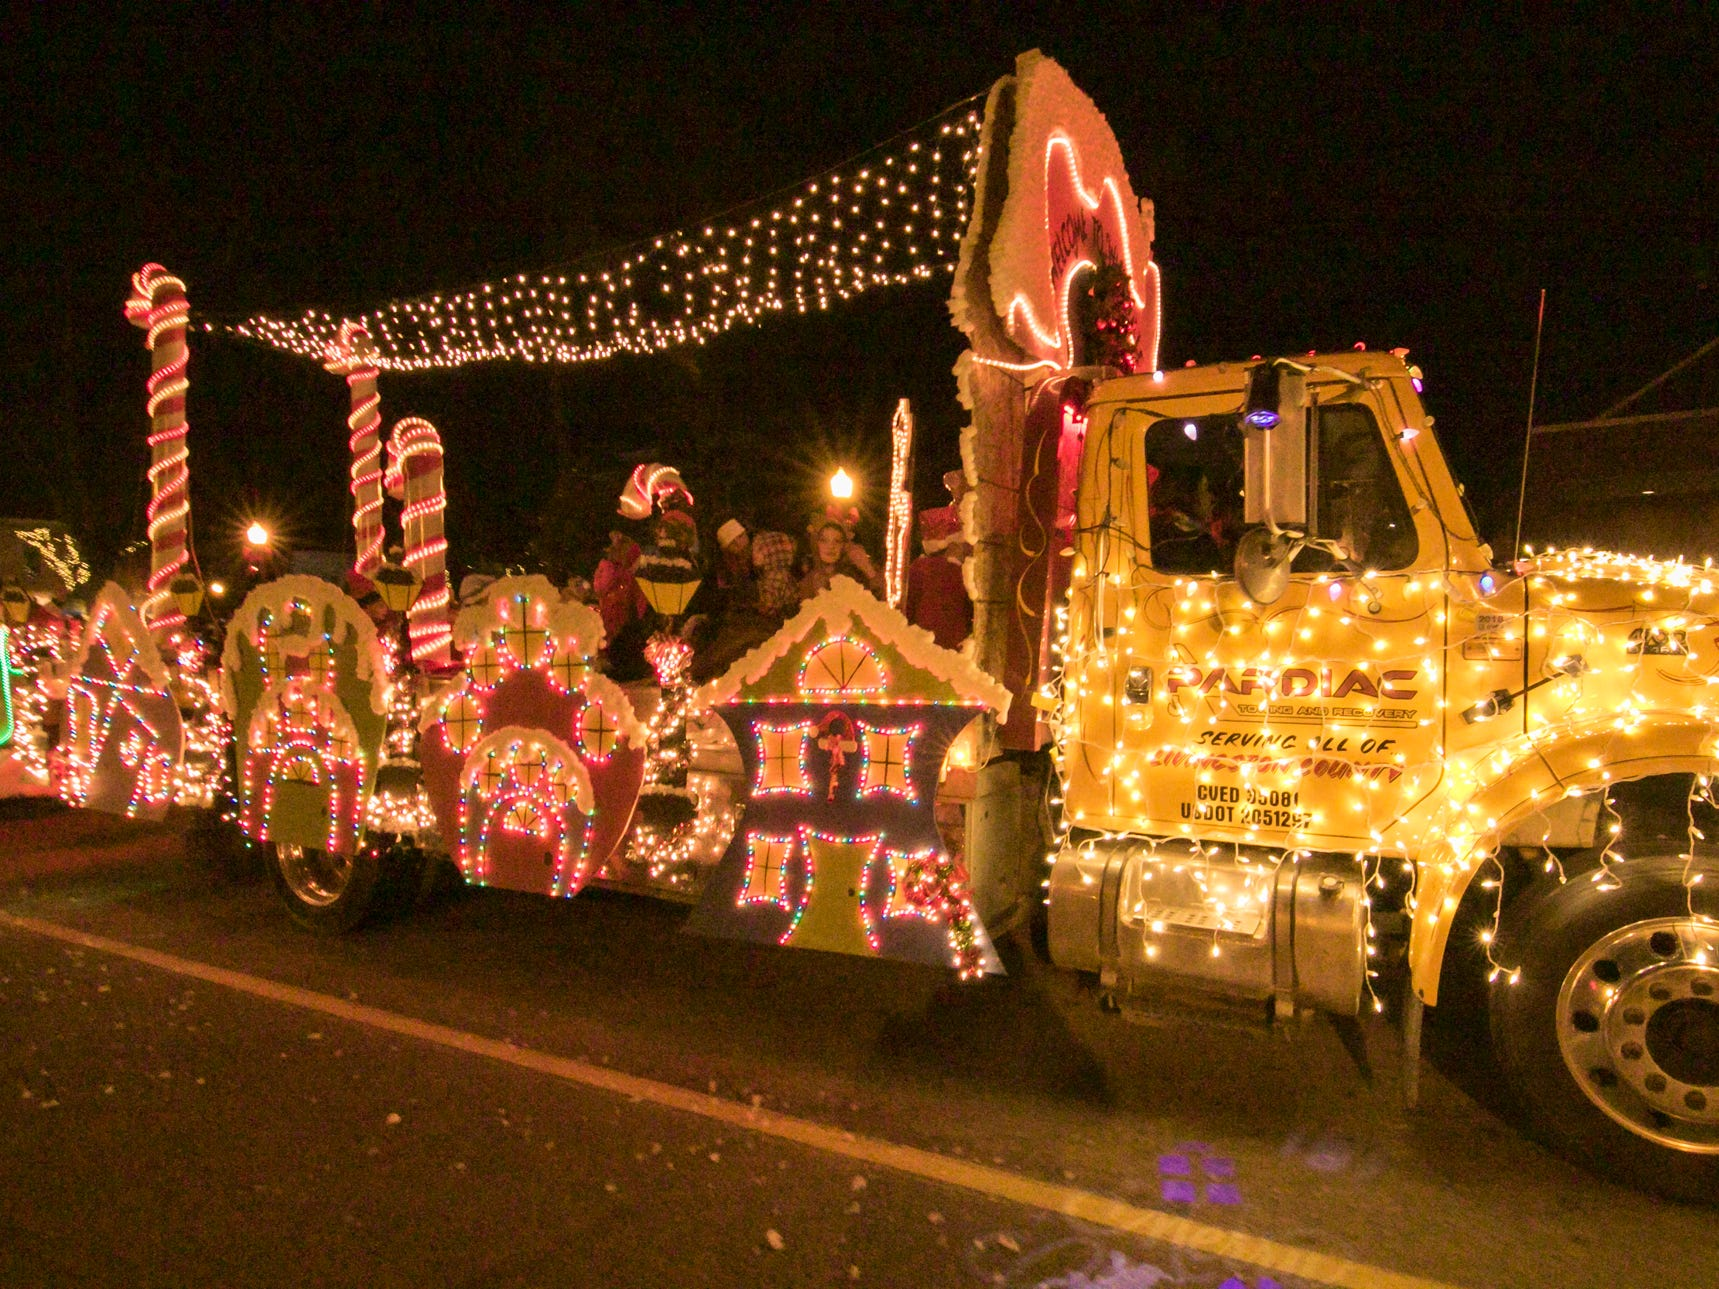 The float by Pardiac Towing won the Children's Delight award in the Fantasy of Lights parade Friday, Nov. 23, 2018.